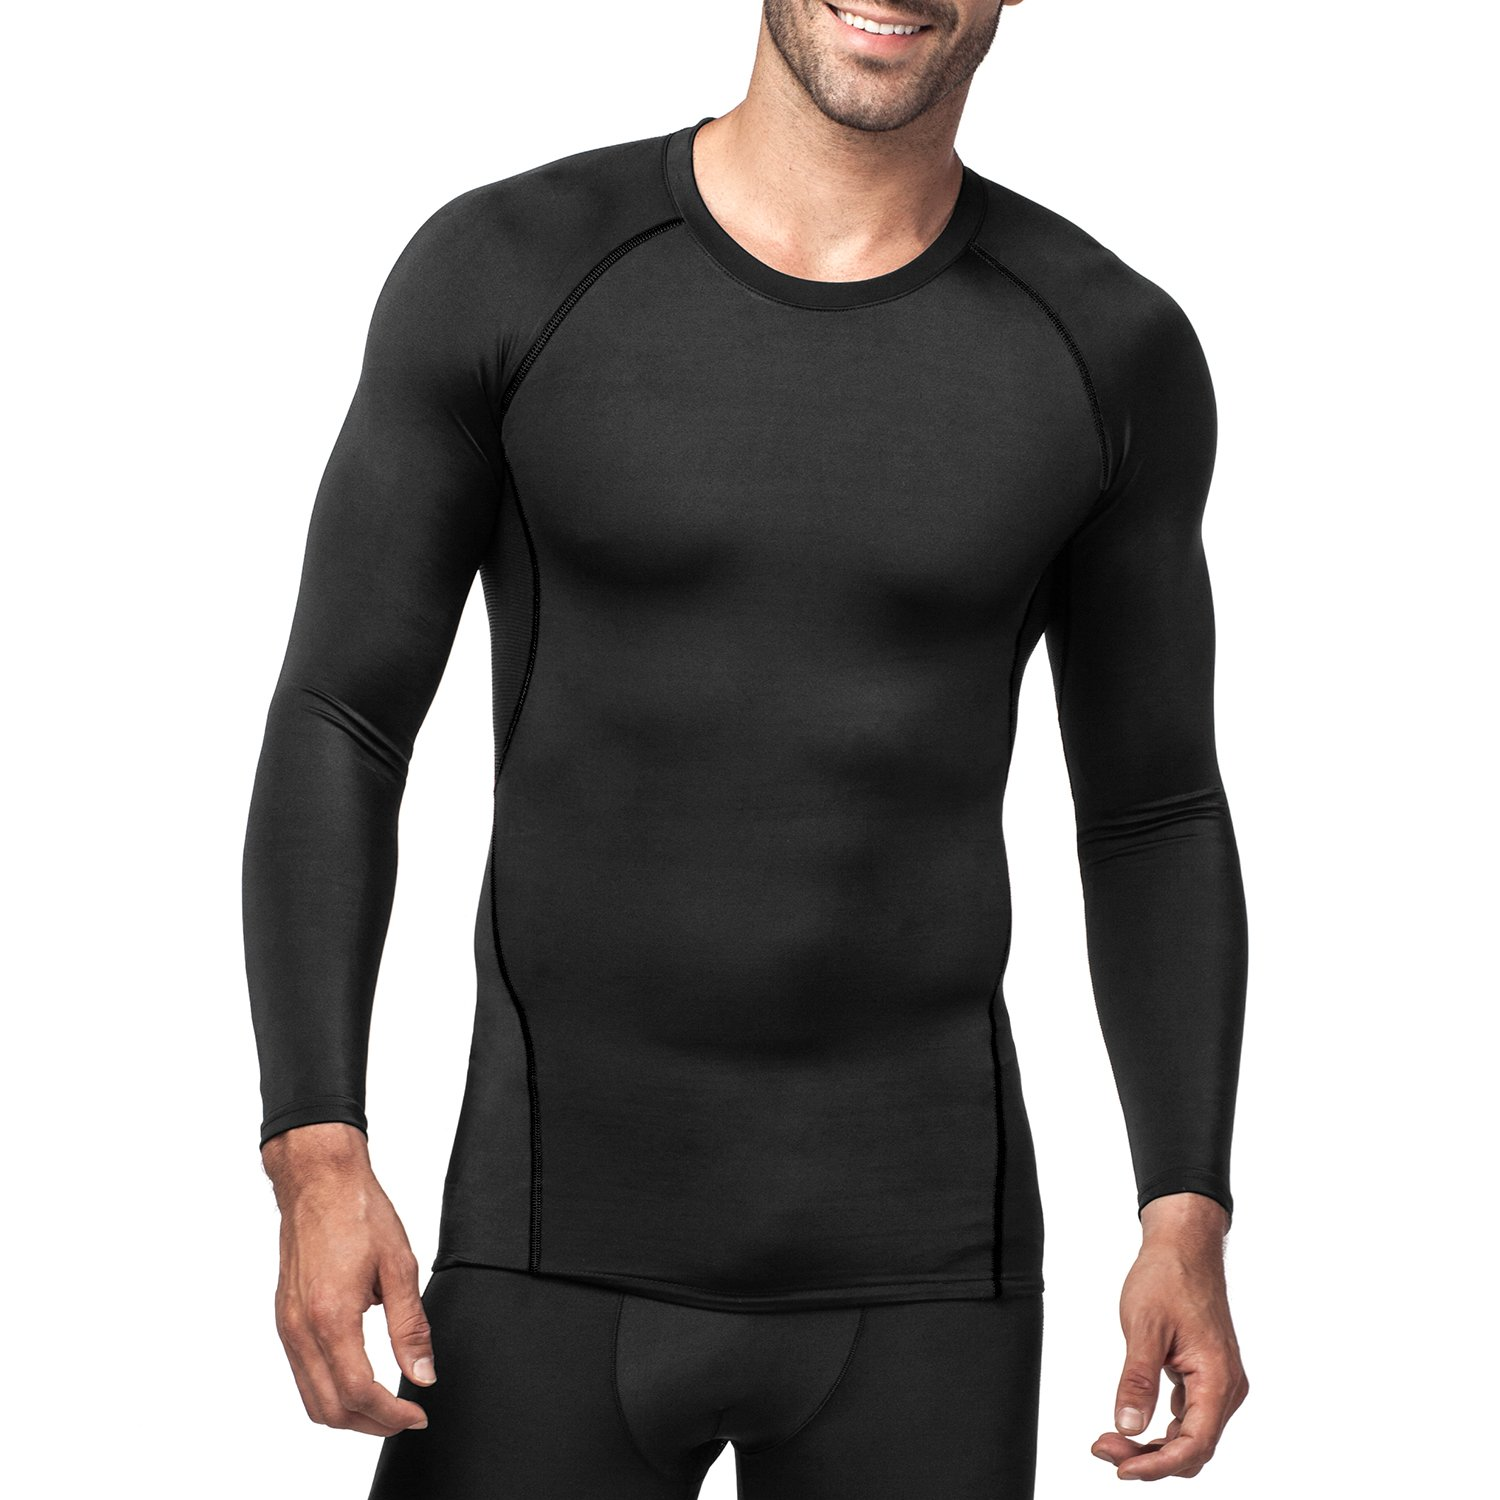 LAPASA Men's Compression Top - GRADUATED COMPRESSION - Long Sleeve T Shirt Running Gym Fitness Training Base Layer - M17